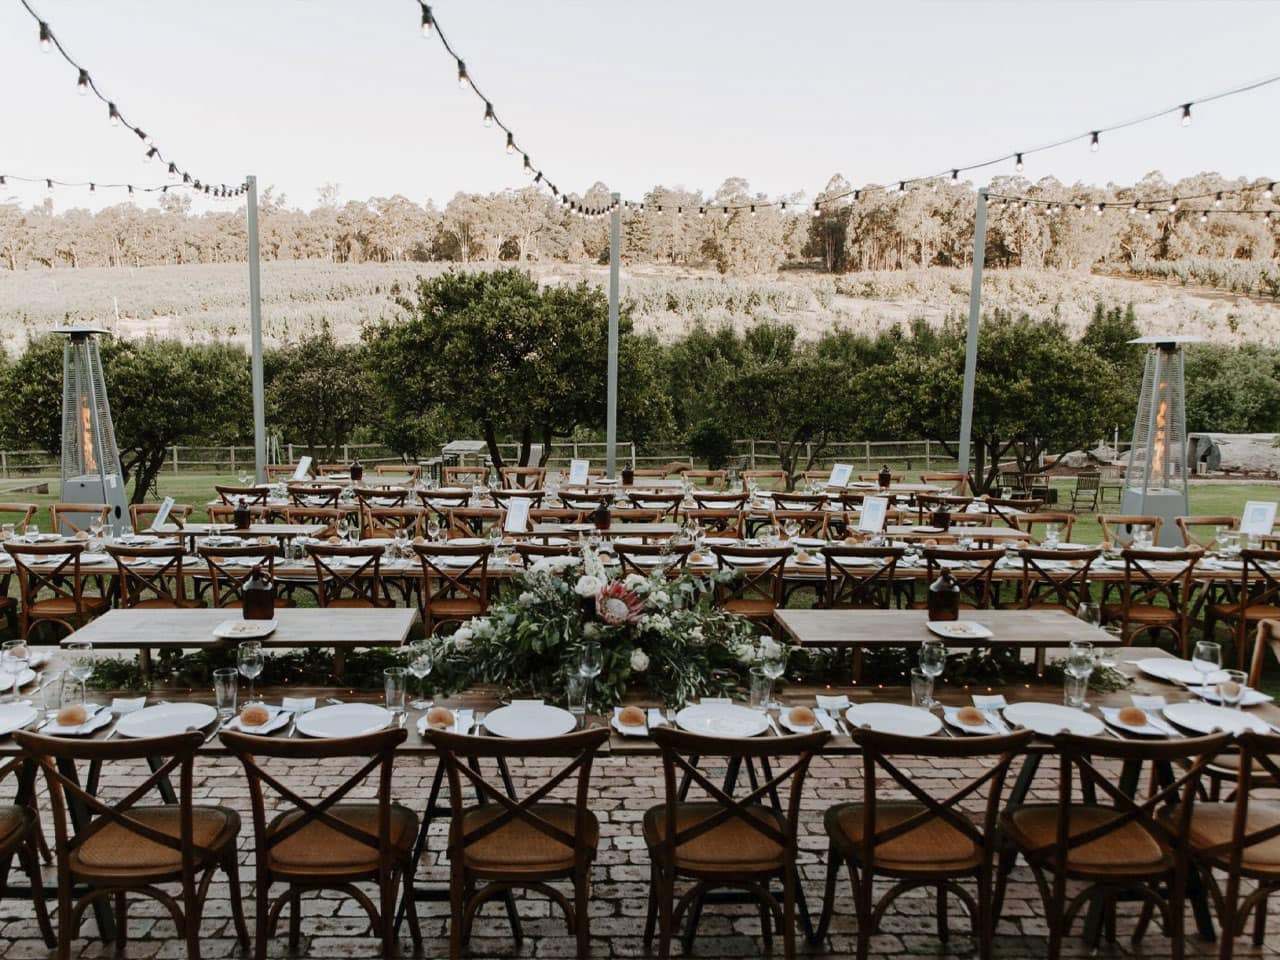 Empty long tables and seats set out for a wedding reception